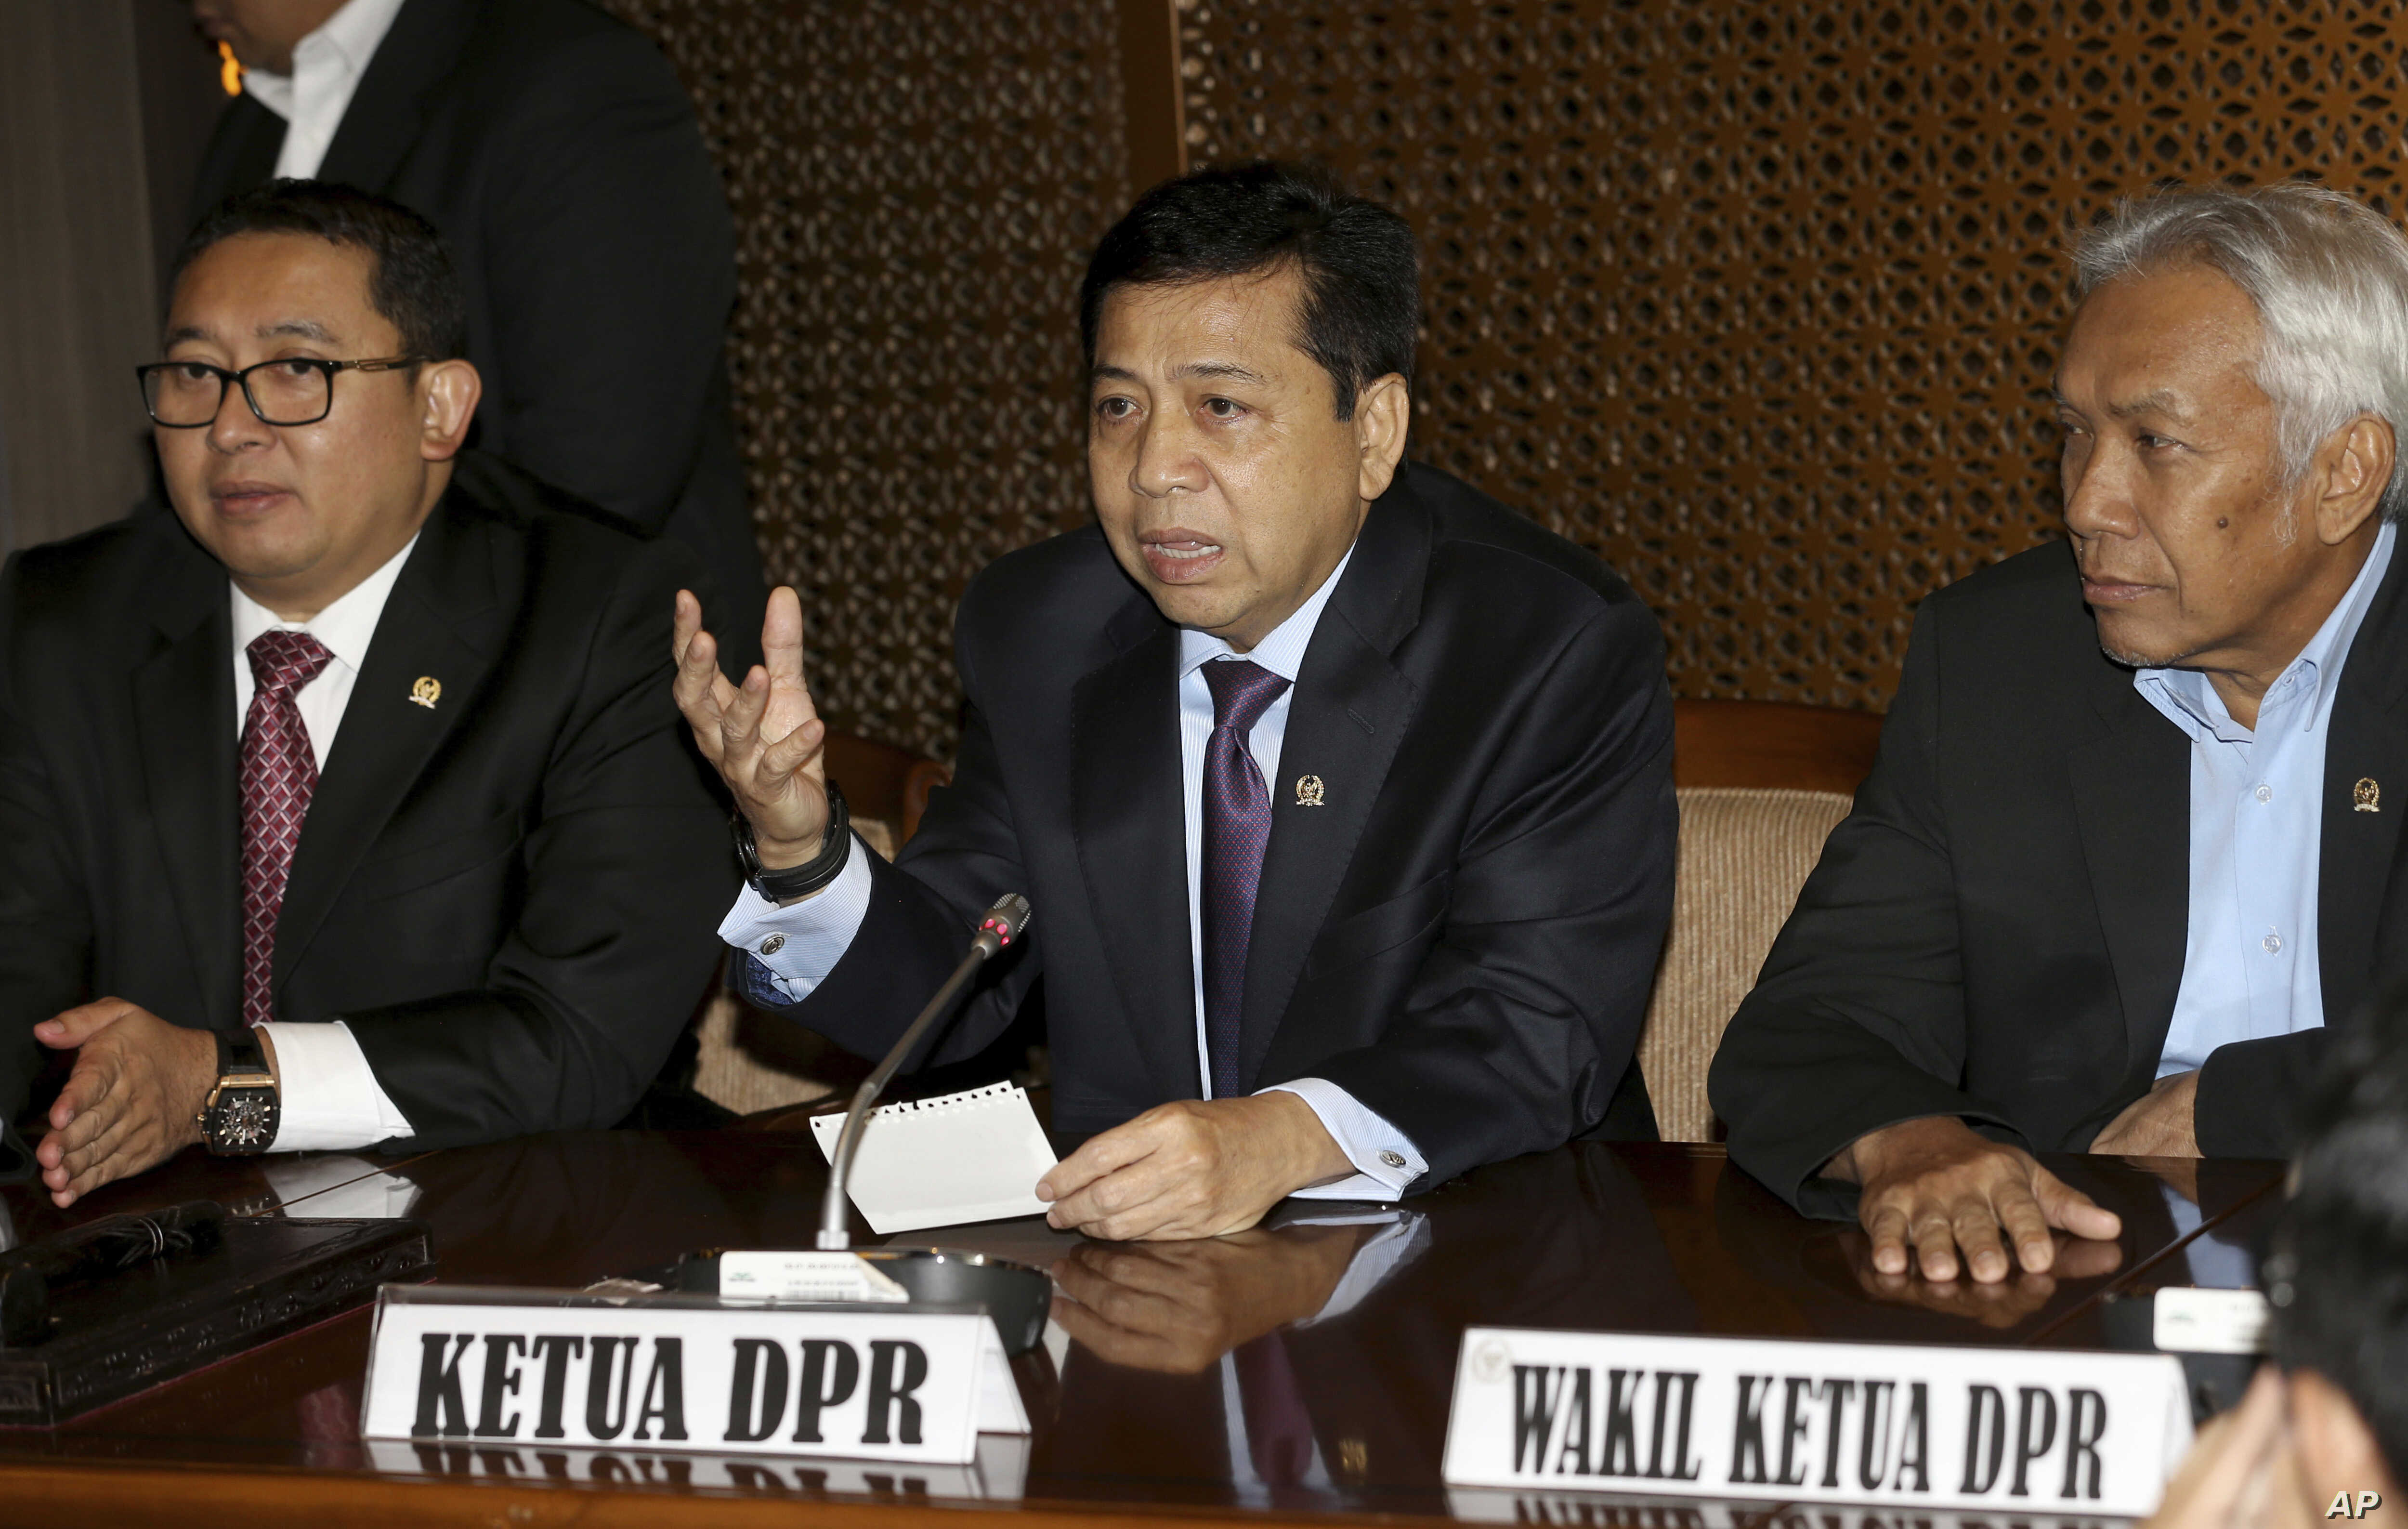 FILE - Indonesian House Speaker Setya Novanto, center, speaks, while accompanied by deputy speakers Fadli Zon, left, and Agus Hermanto, right, during press conference in Jakarta, Indonesia.